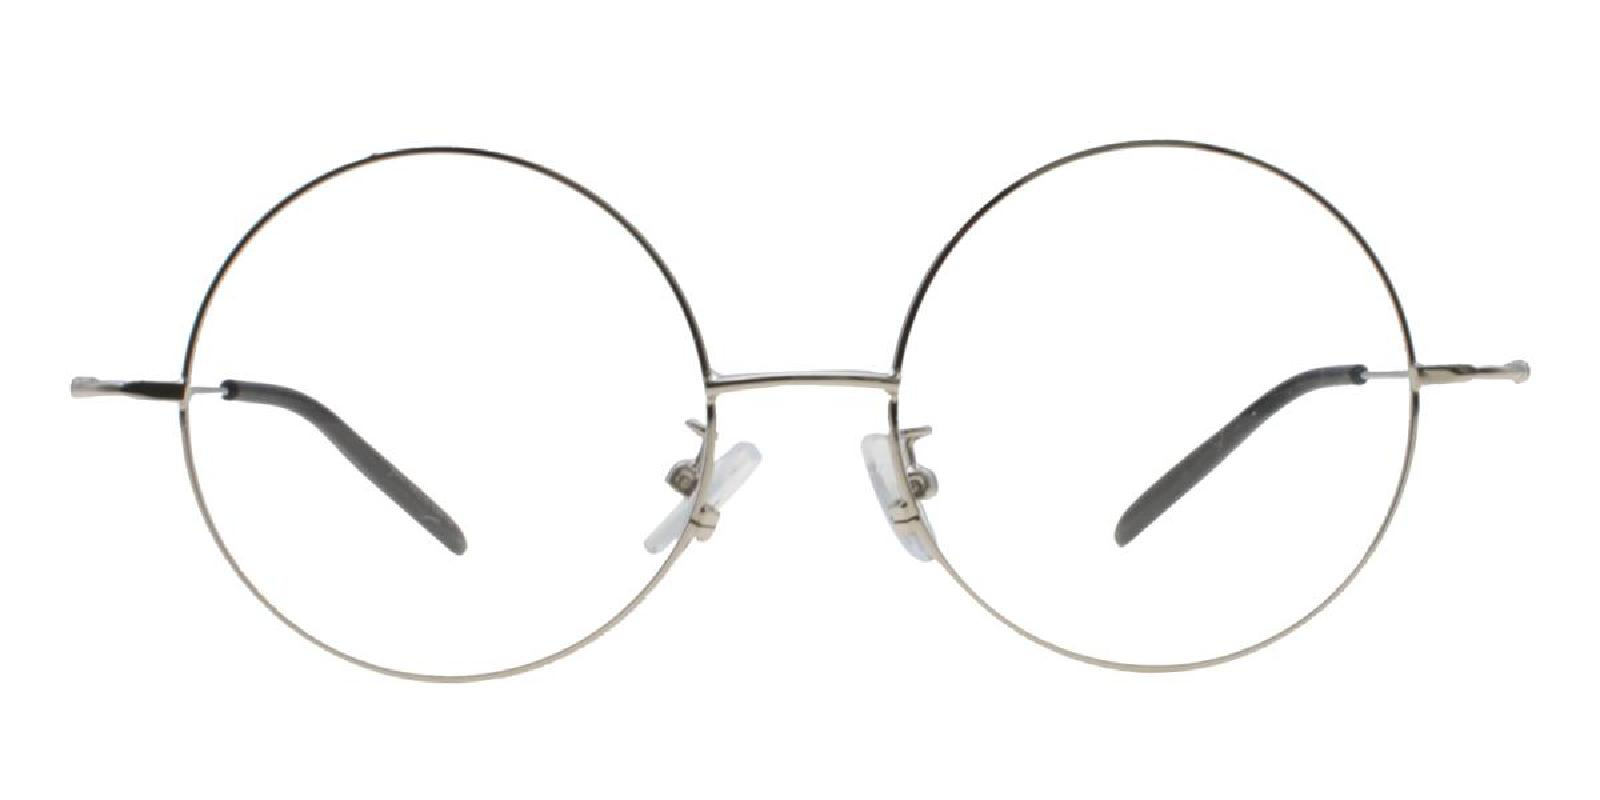 Lily-Silver-Round-Acetate / Metal-Eyeglasses-additional2